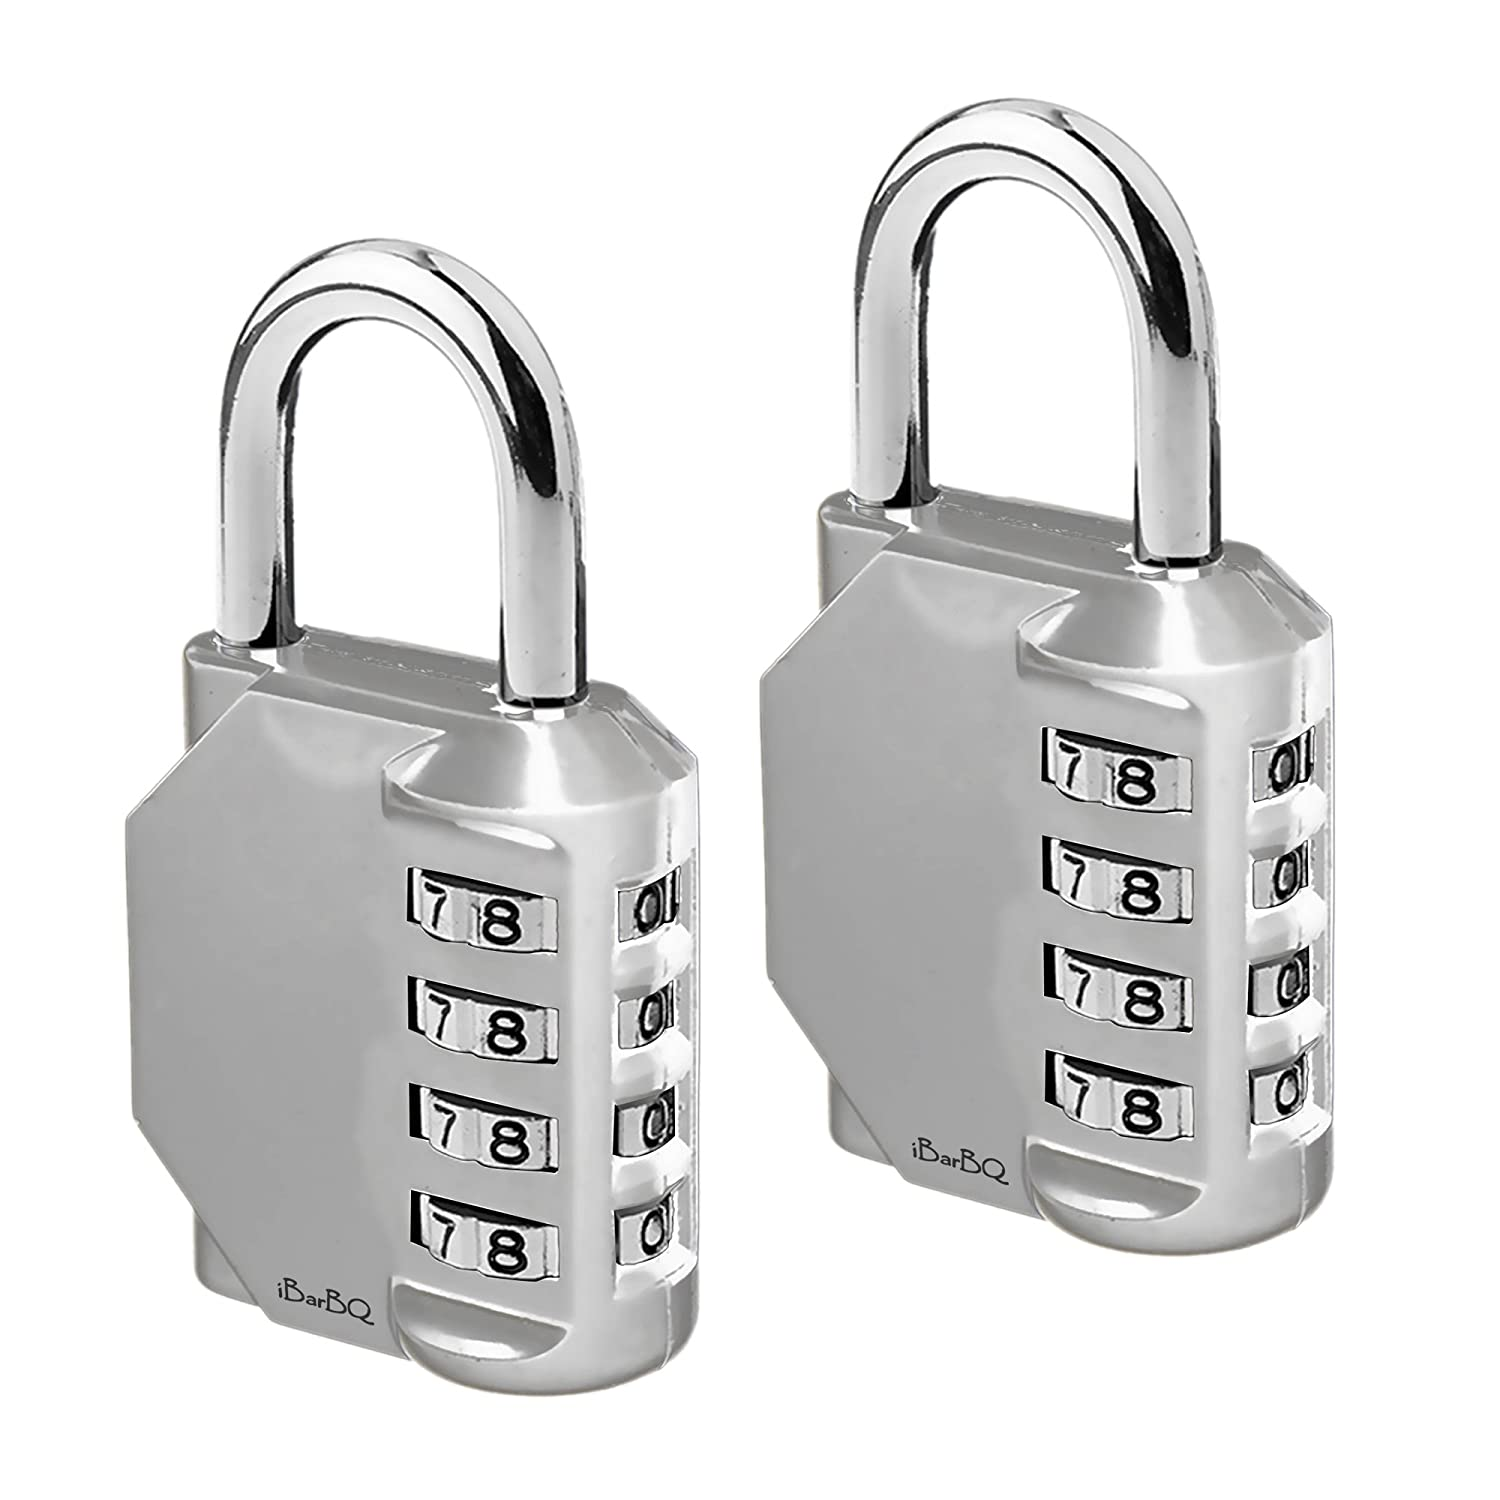 Outlet Ultra Durable 4 Digit Code Padlock Baggage Travel